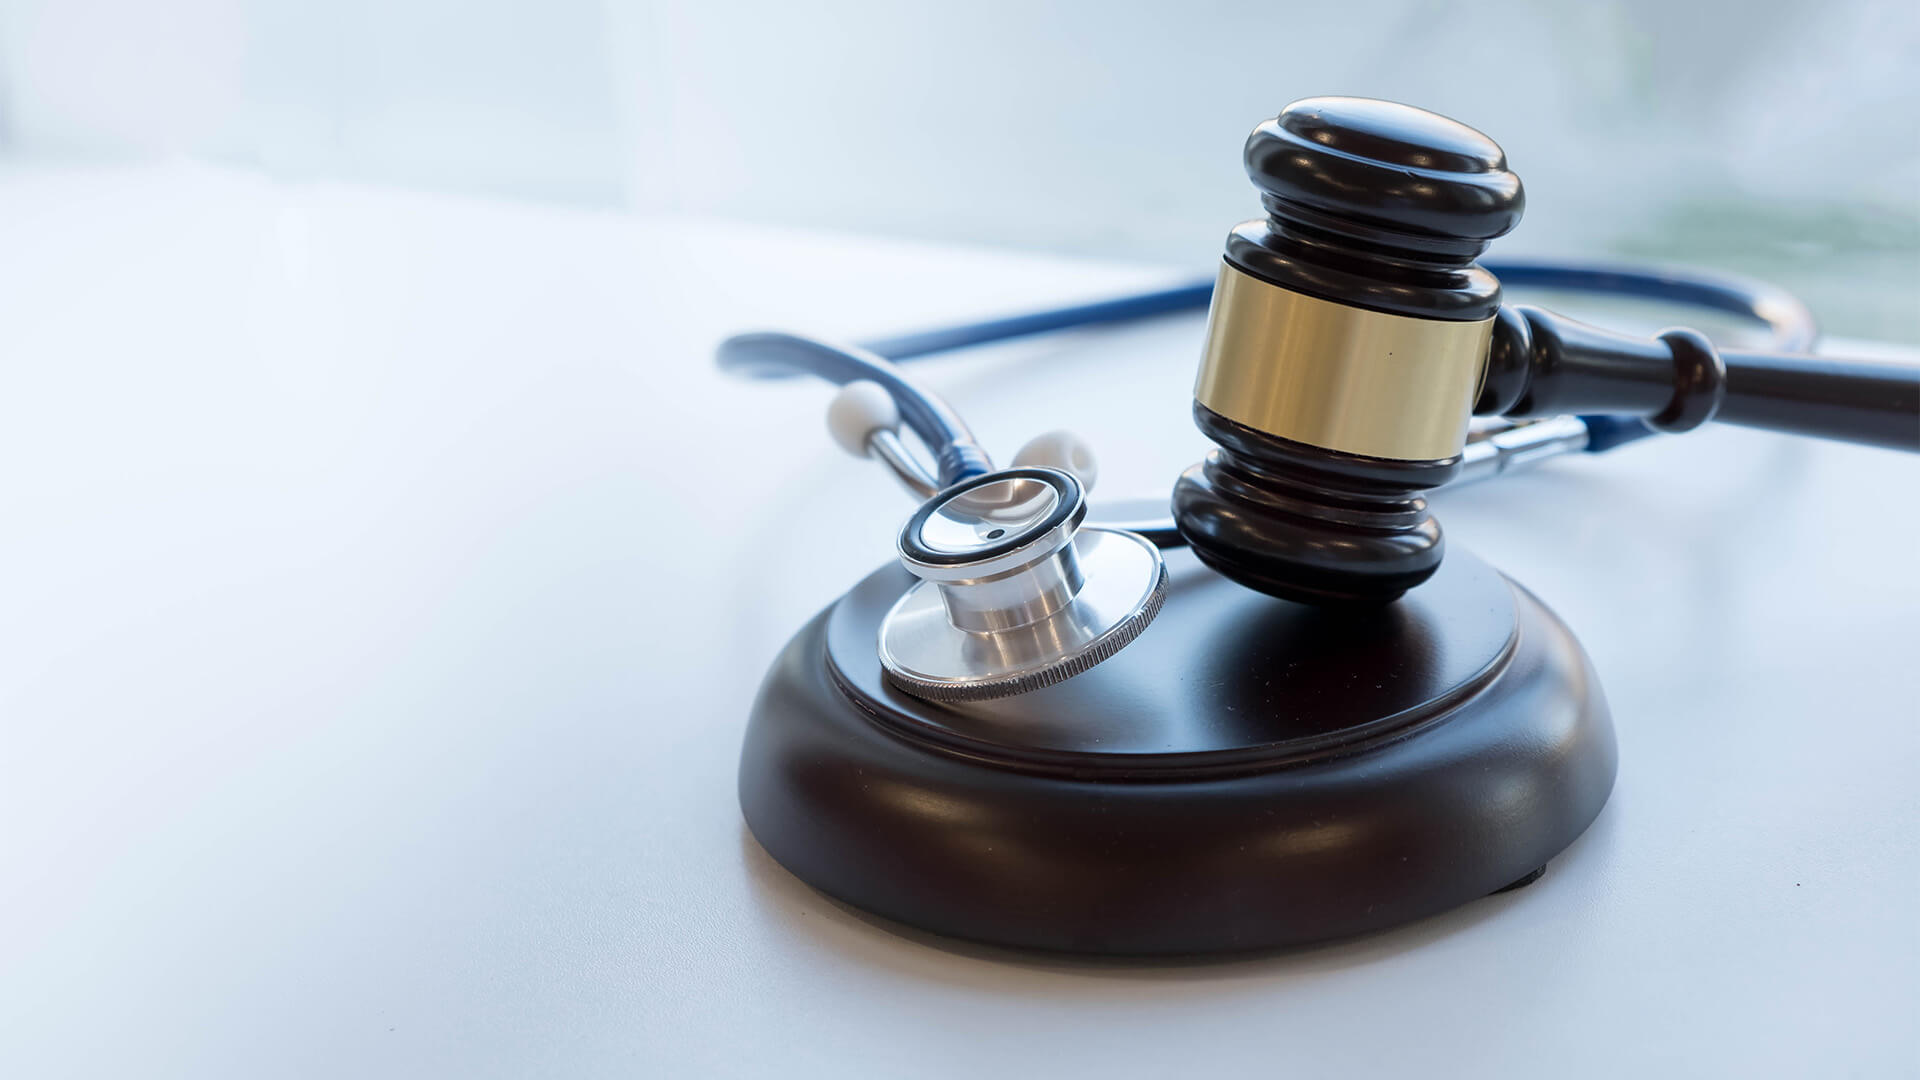 Why Expedite a Medical Malpractice Lawsuit?